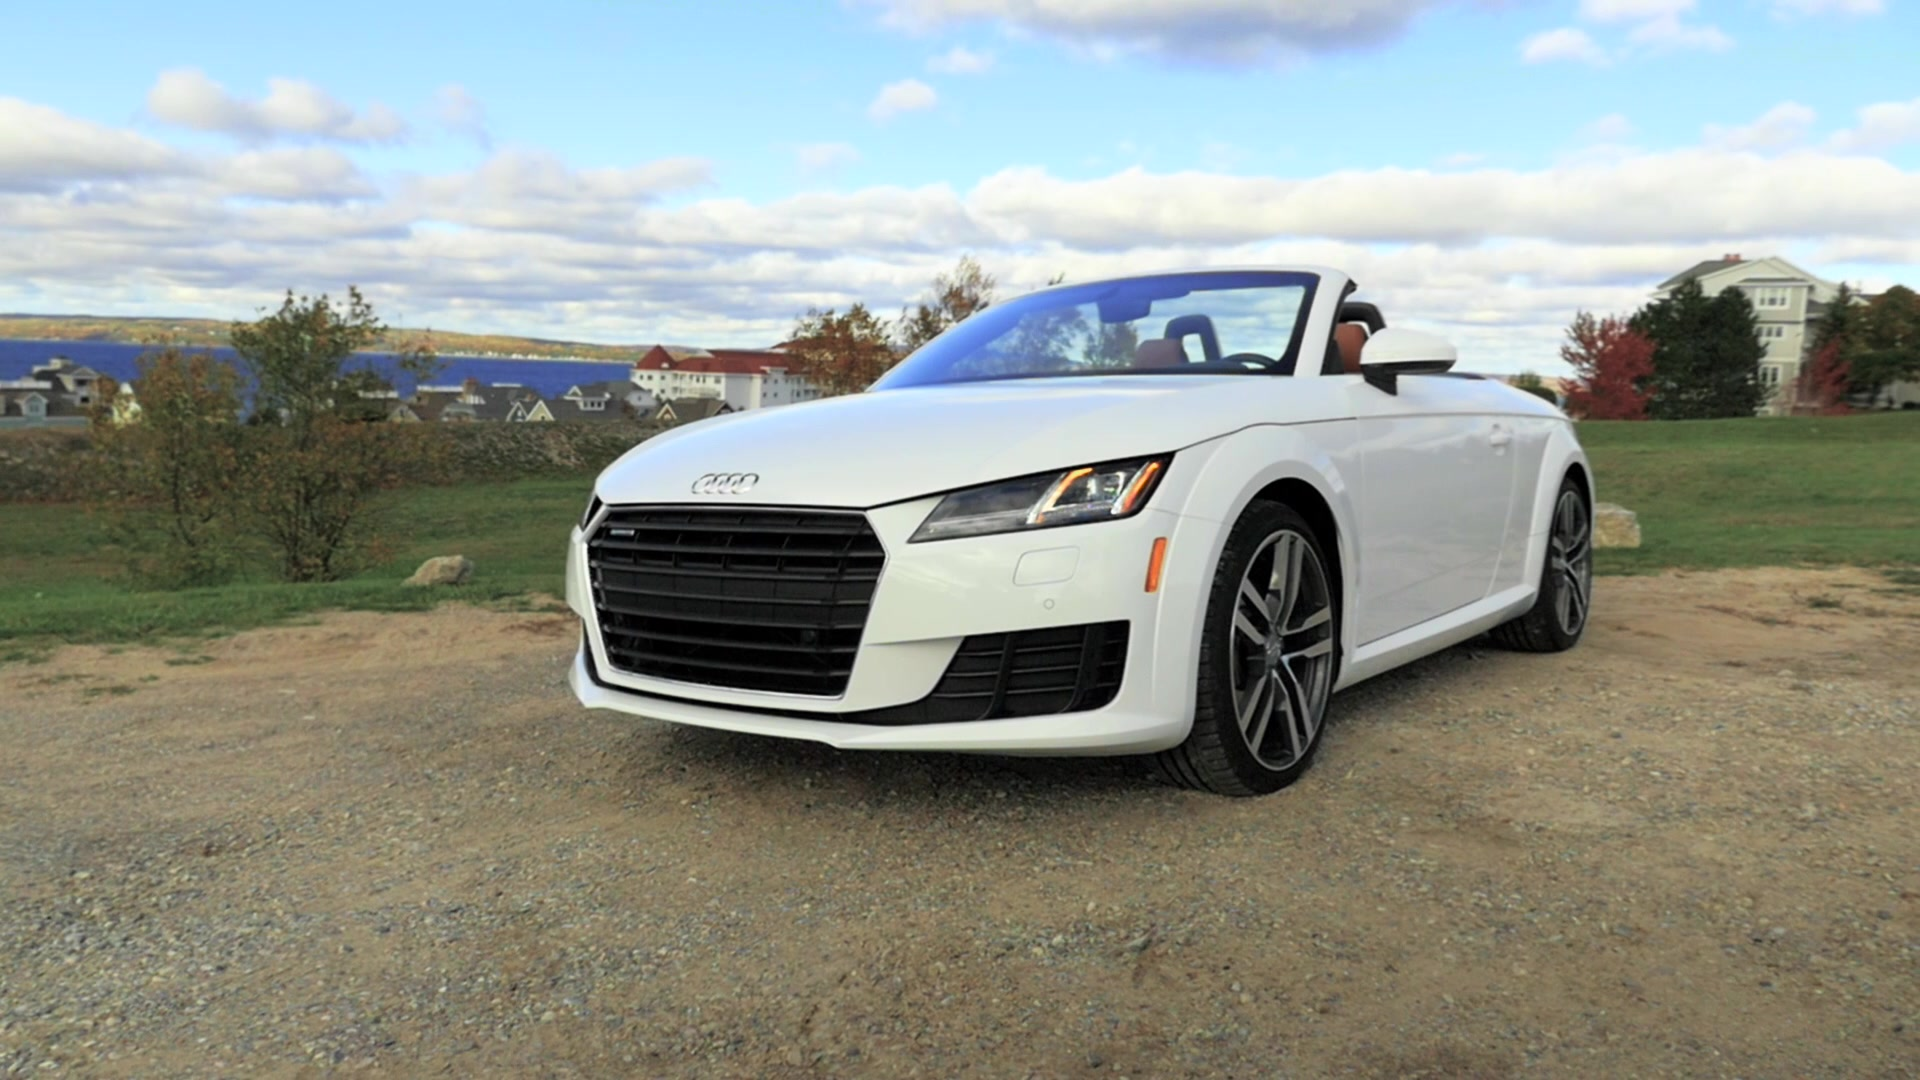 2016 Audi TT Virtual Cockpit Demo | Autoblog Tech